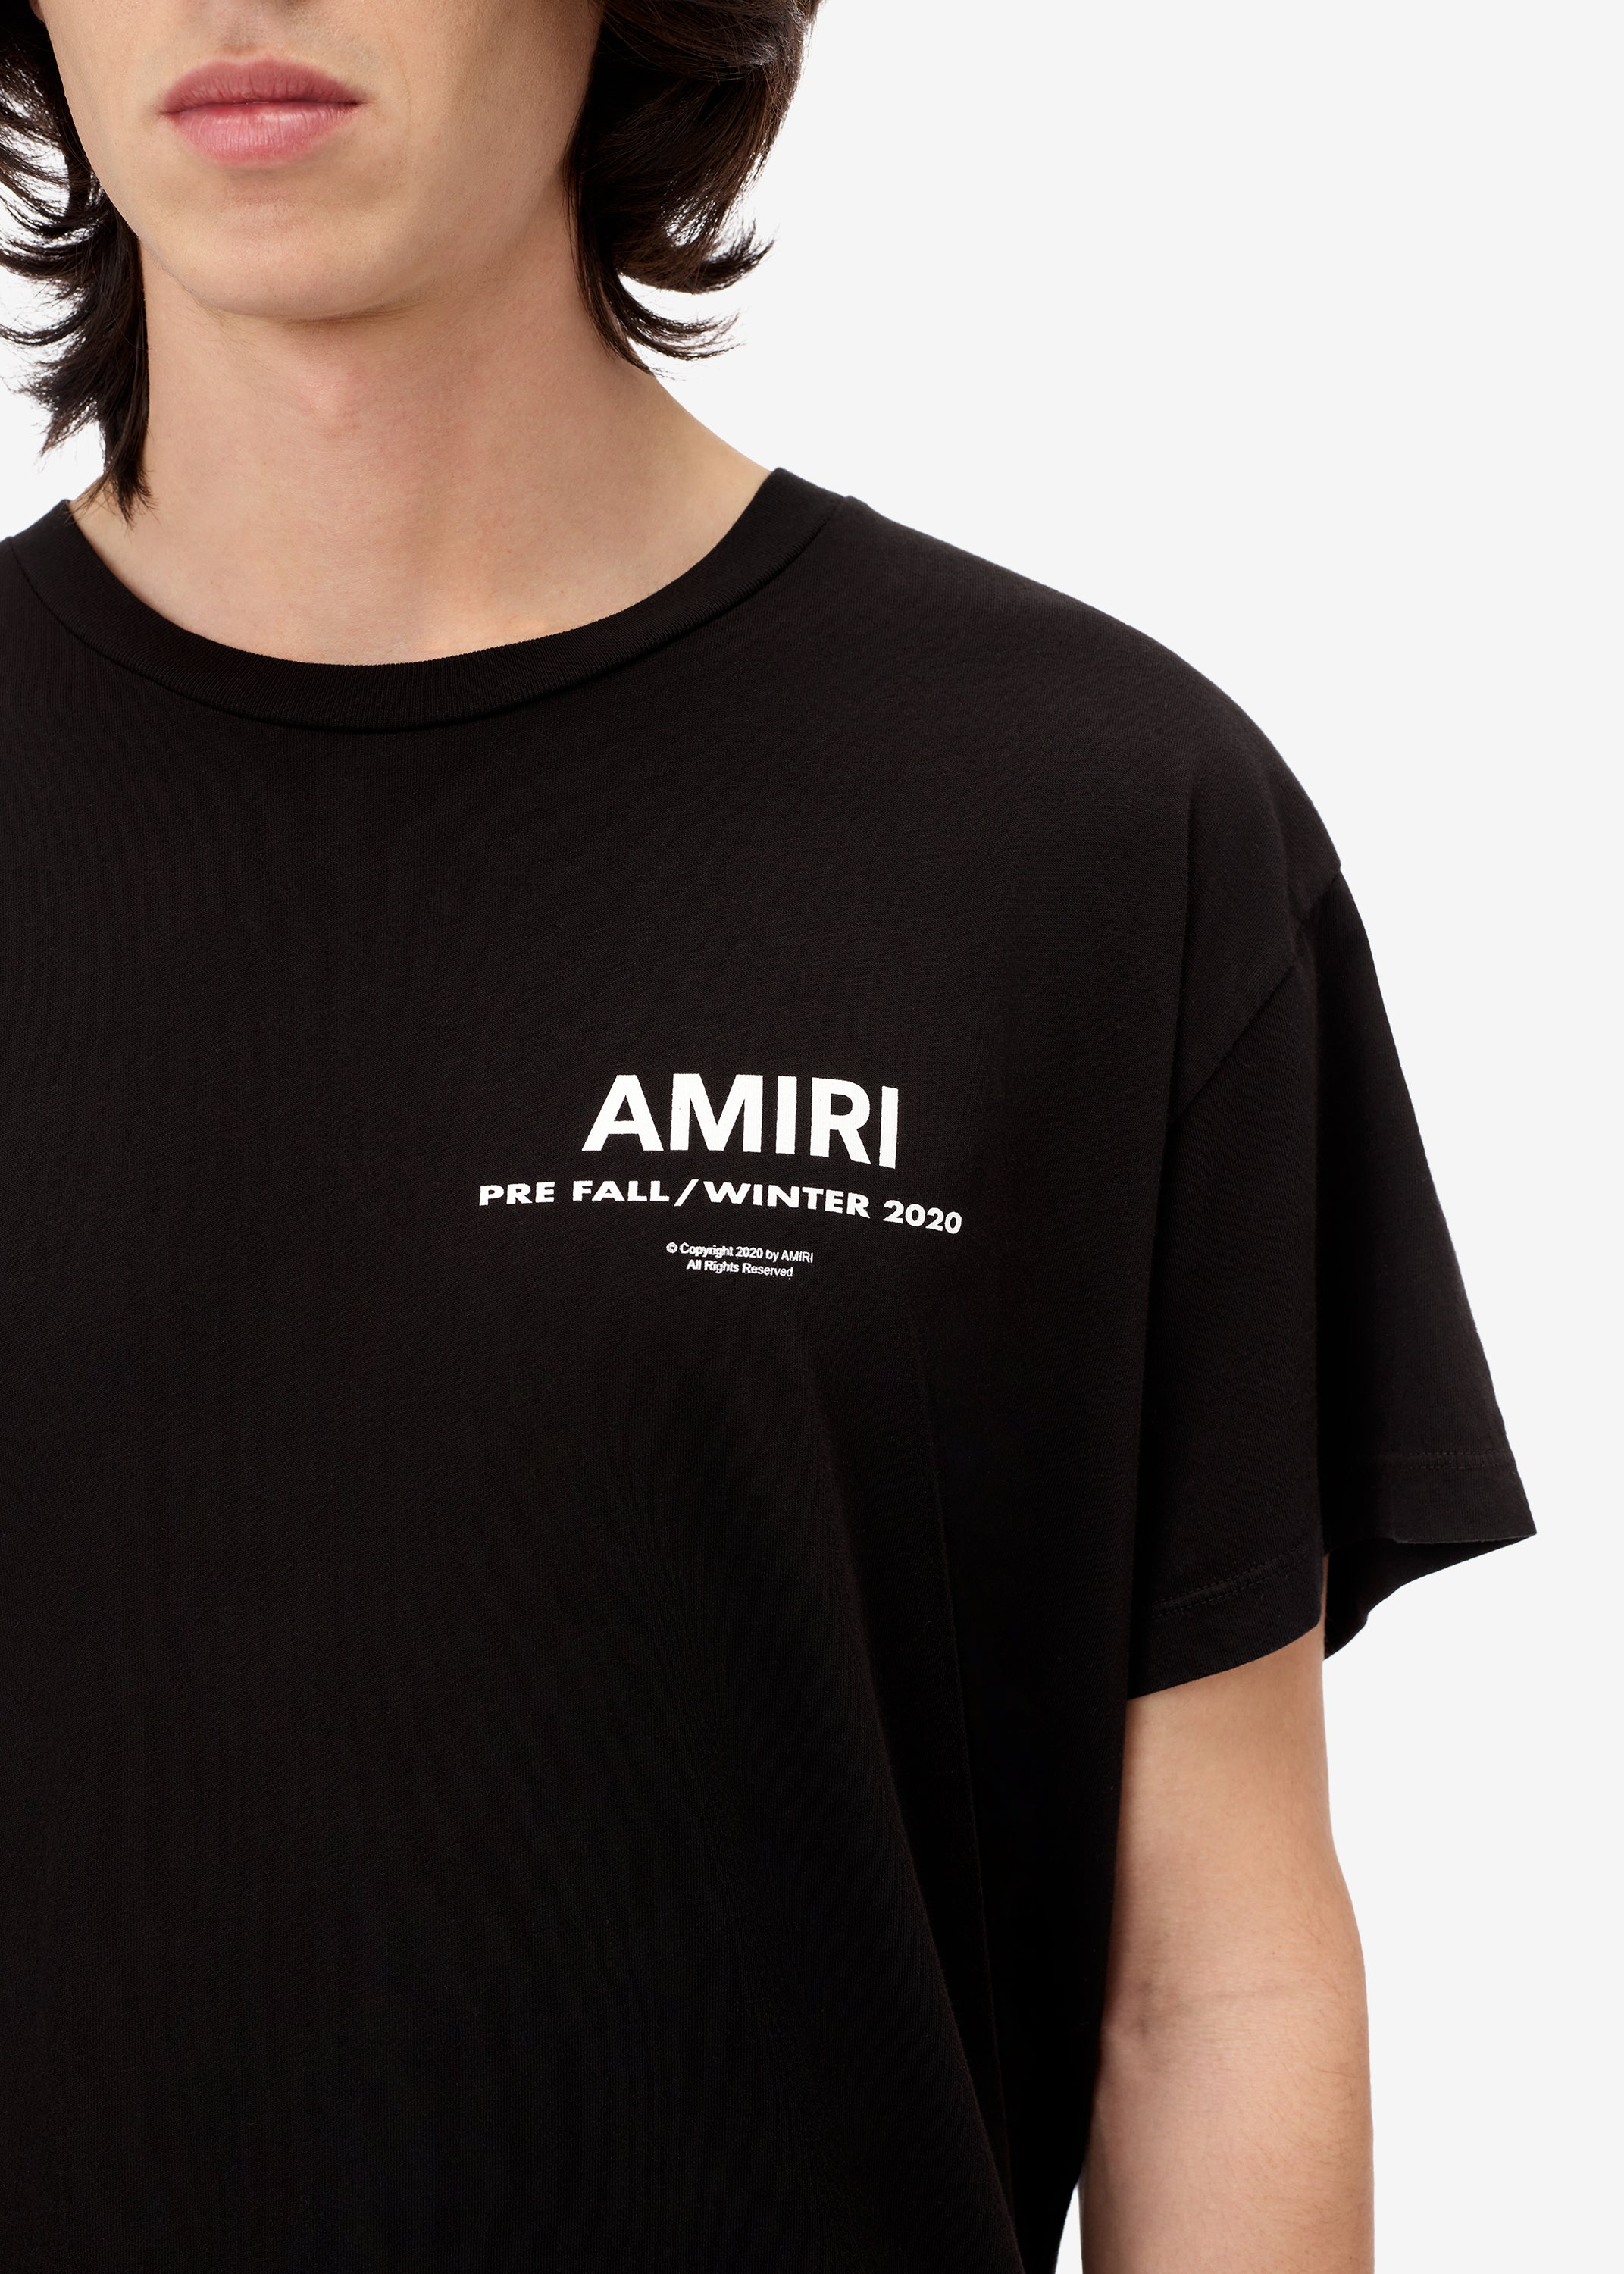 pf20-amiri-tee-web-exclusive-black-image-4